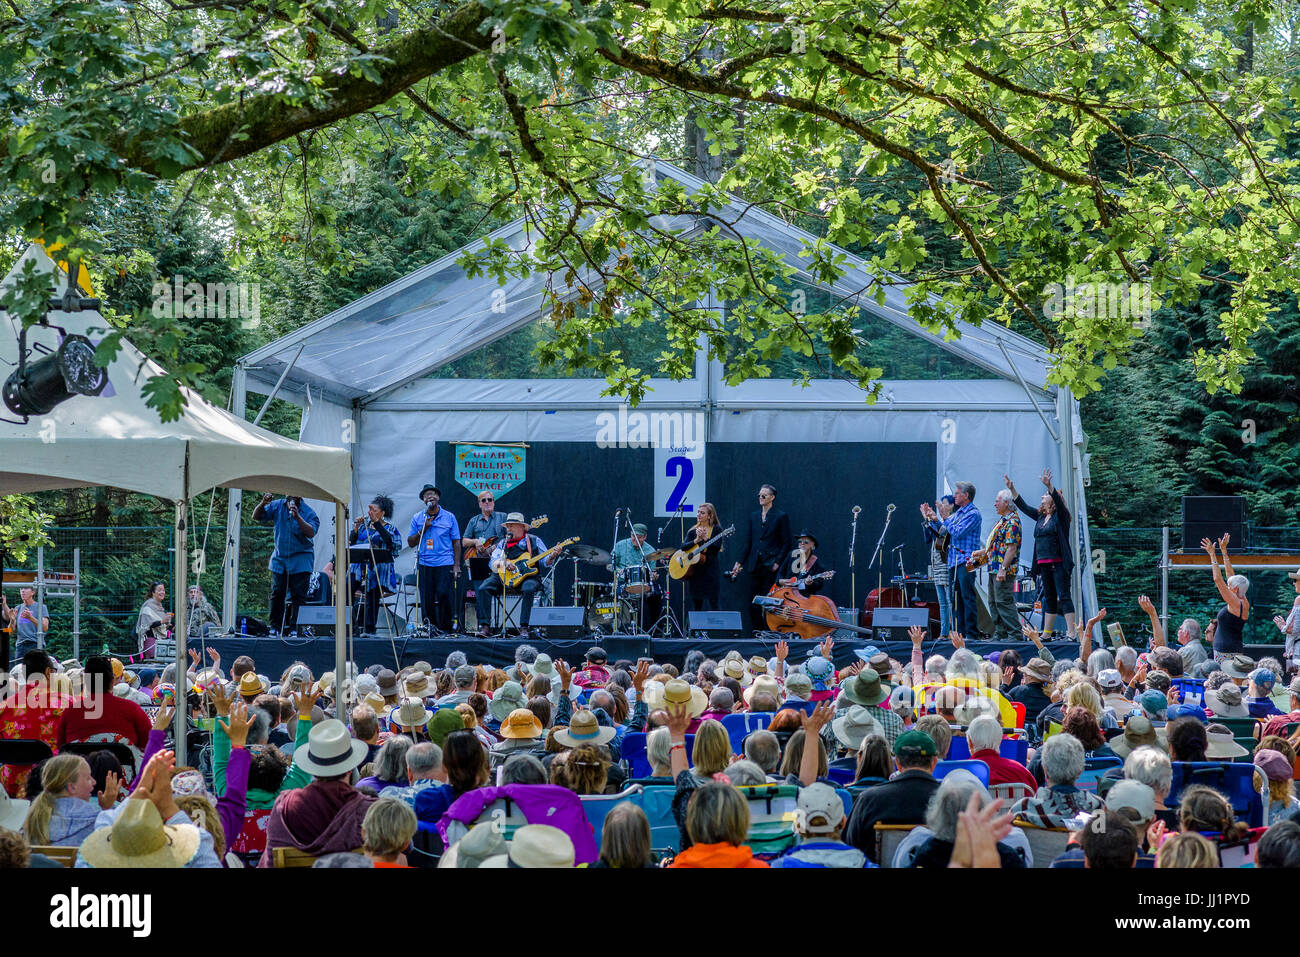 Sunday morning Gospel music Stage 2, 40th Annual Vancouver Folk Music Festival, Vancouver, British Columbia, Canada. - Stock Image